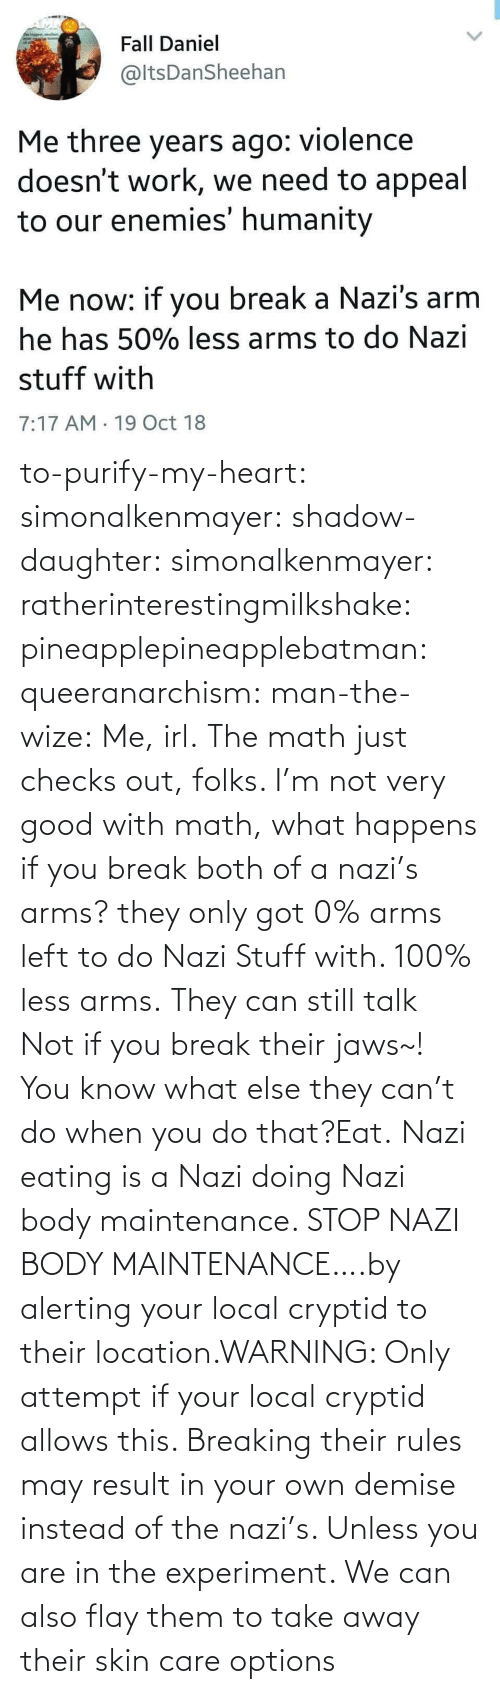 Instead Of: to-purify-my-heart:  simonalkenmayer:  shadow-daughter: simonalkenmayer:  ratherinterestingmilkshake:  pineapplepineapplebatman:  queeranarchism:  man-the-wize: Me, irl. The math just checks out, folks.     I'm not very good with math, what happens if you break both of a nazi's arms?  they only got 0% arms left to do Nazi Stuff with. 100% less arms.  They can still talk  Not if you break their jaws~!  You know what else they can't do when you do that?Eat.   Nazi eating is a Nazi doing Nazi body maintenance. STOP NAZI BODY MAINTENANCE….by alerting your local cryptid to their location.WARNING: Only attempt if your local cryptid allows this. Breaking their rules may result in your own demise instead of the nazi's. Unless you are in the experiment.    We can also flay them to take away their skin care options